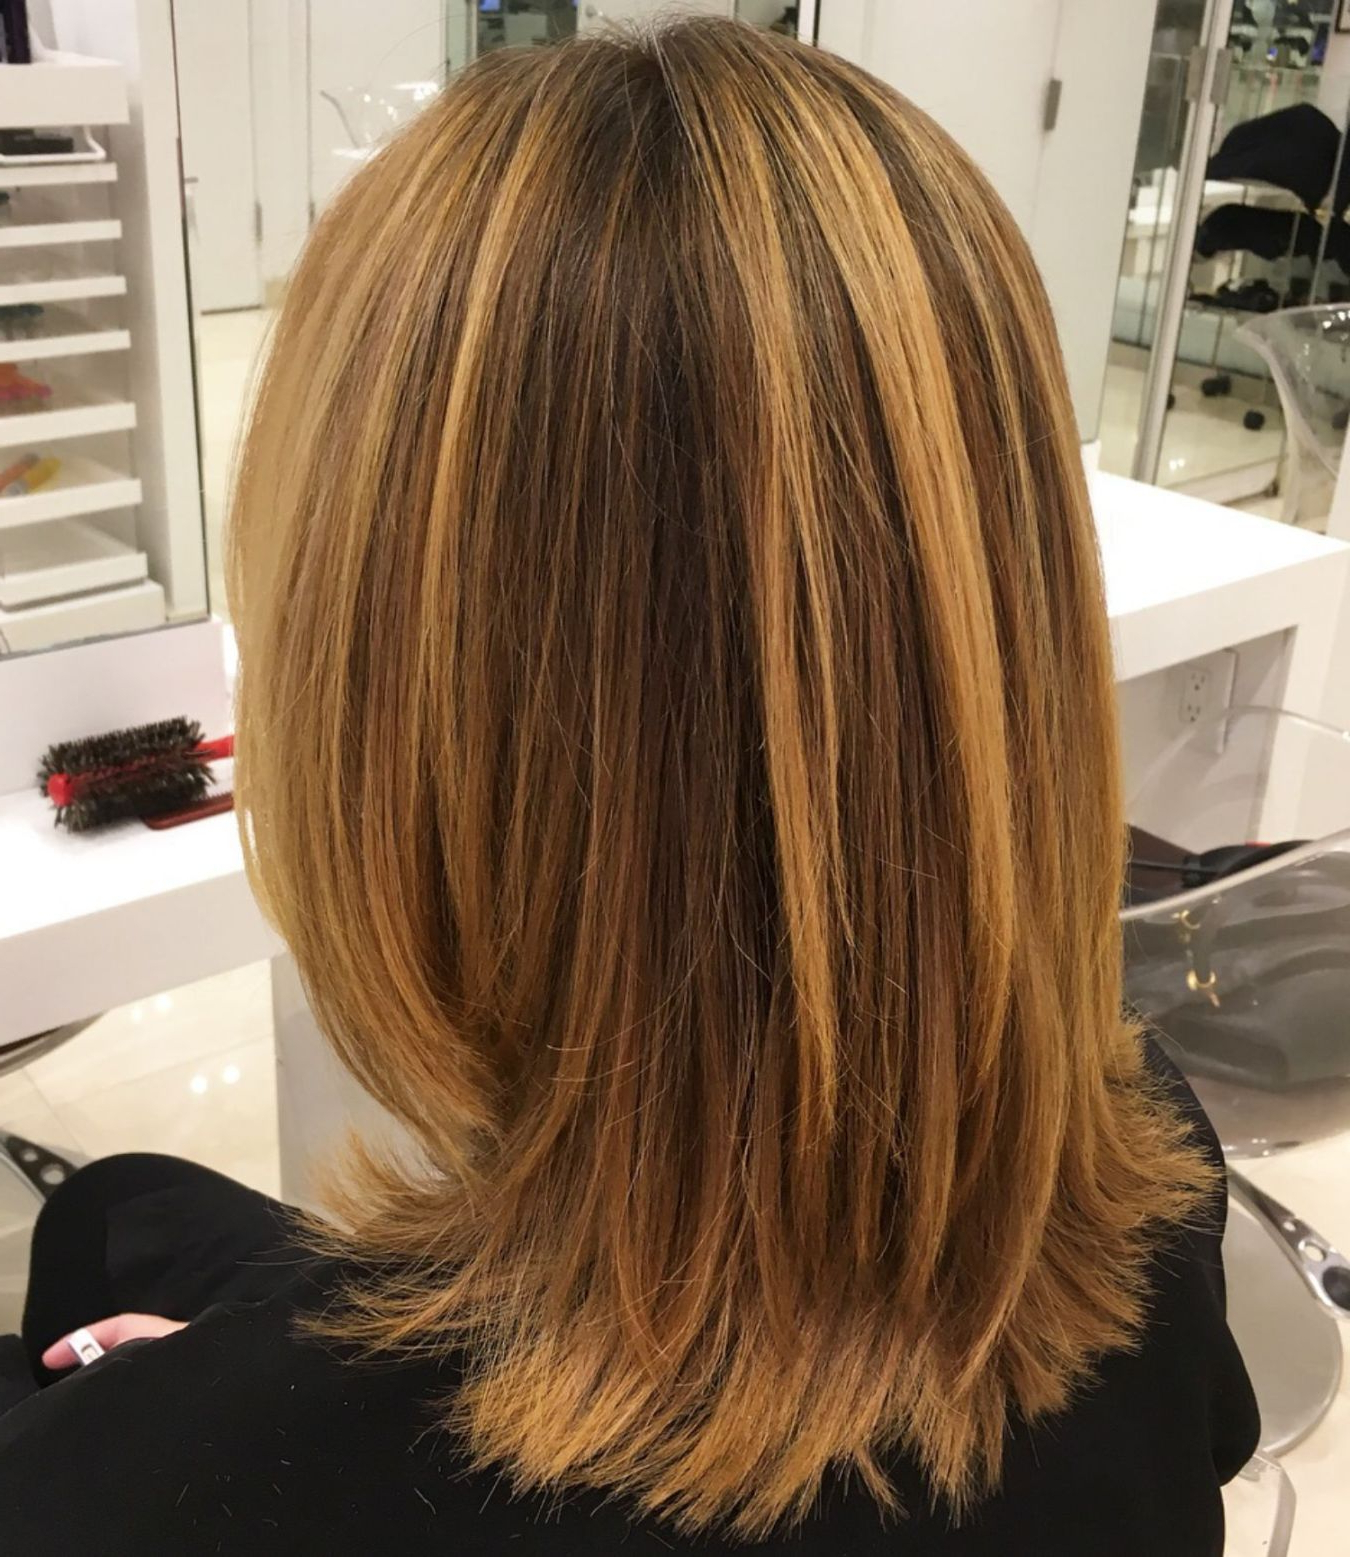 Hair Cut For Current Bob Haircuts With Symmetrical Swoopy Layers (Gallery 19 of 20)